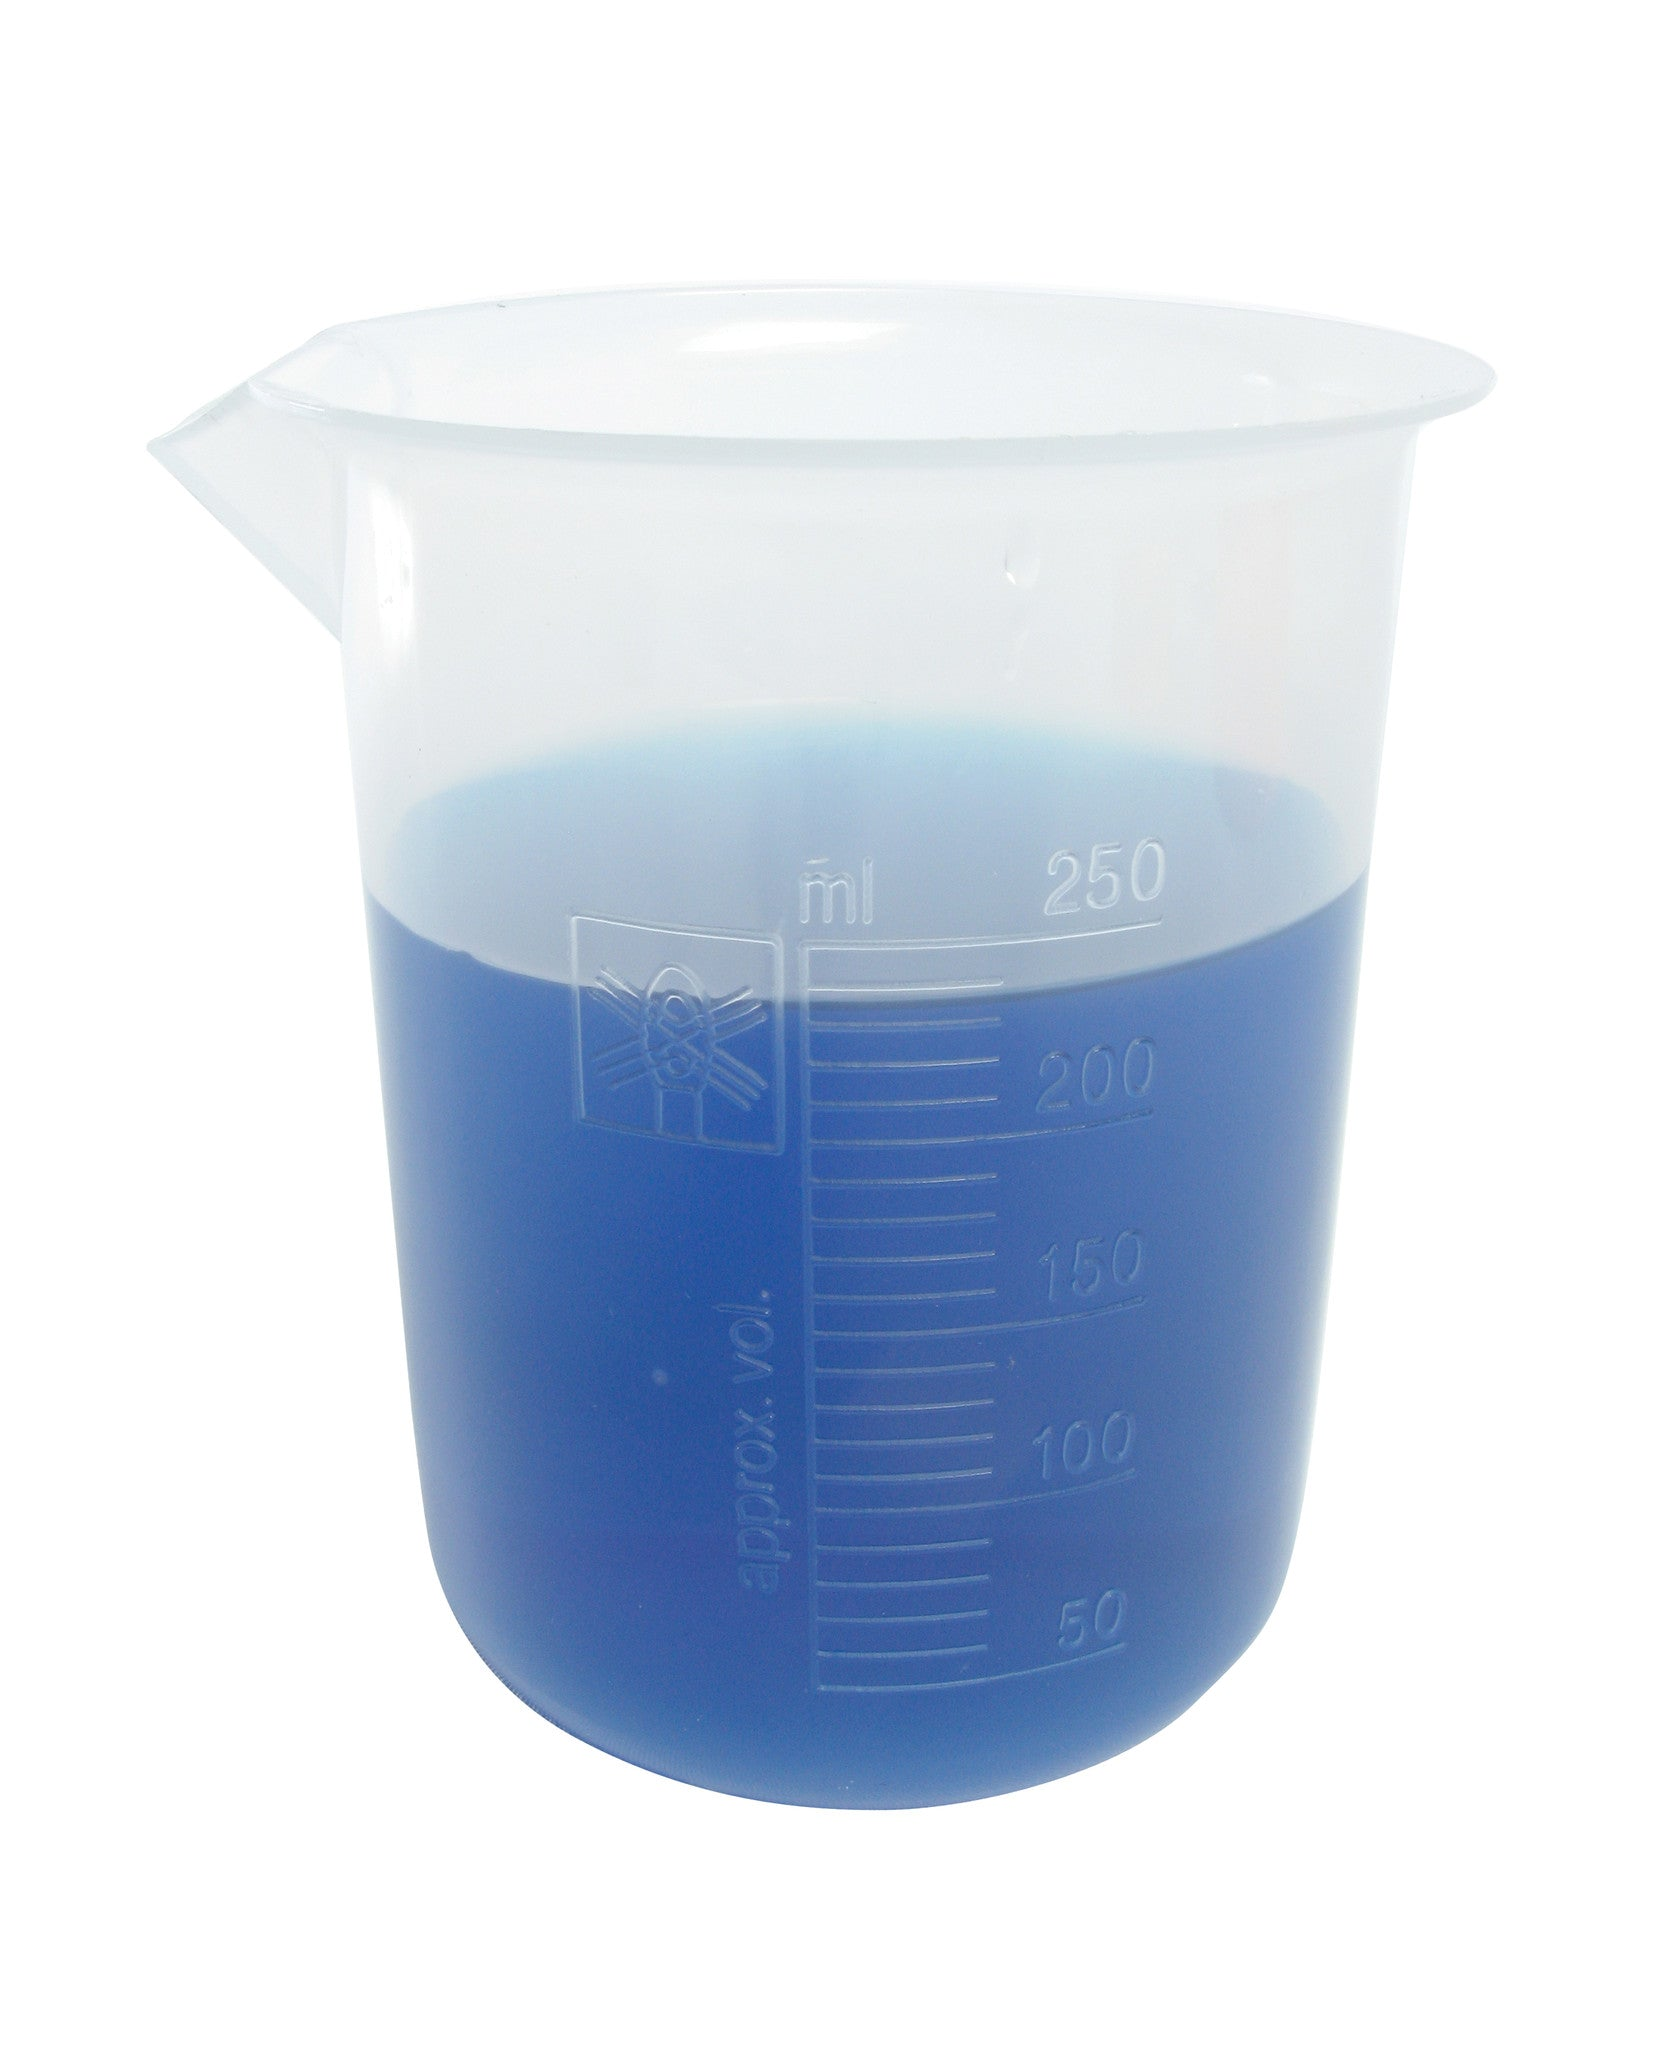 Polypropylene Graduated Beaker - 250 ml - The Science Shop